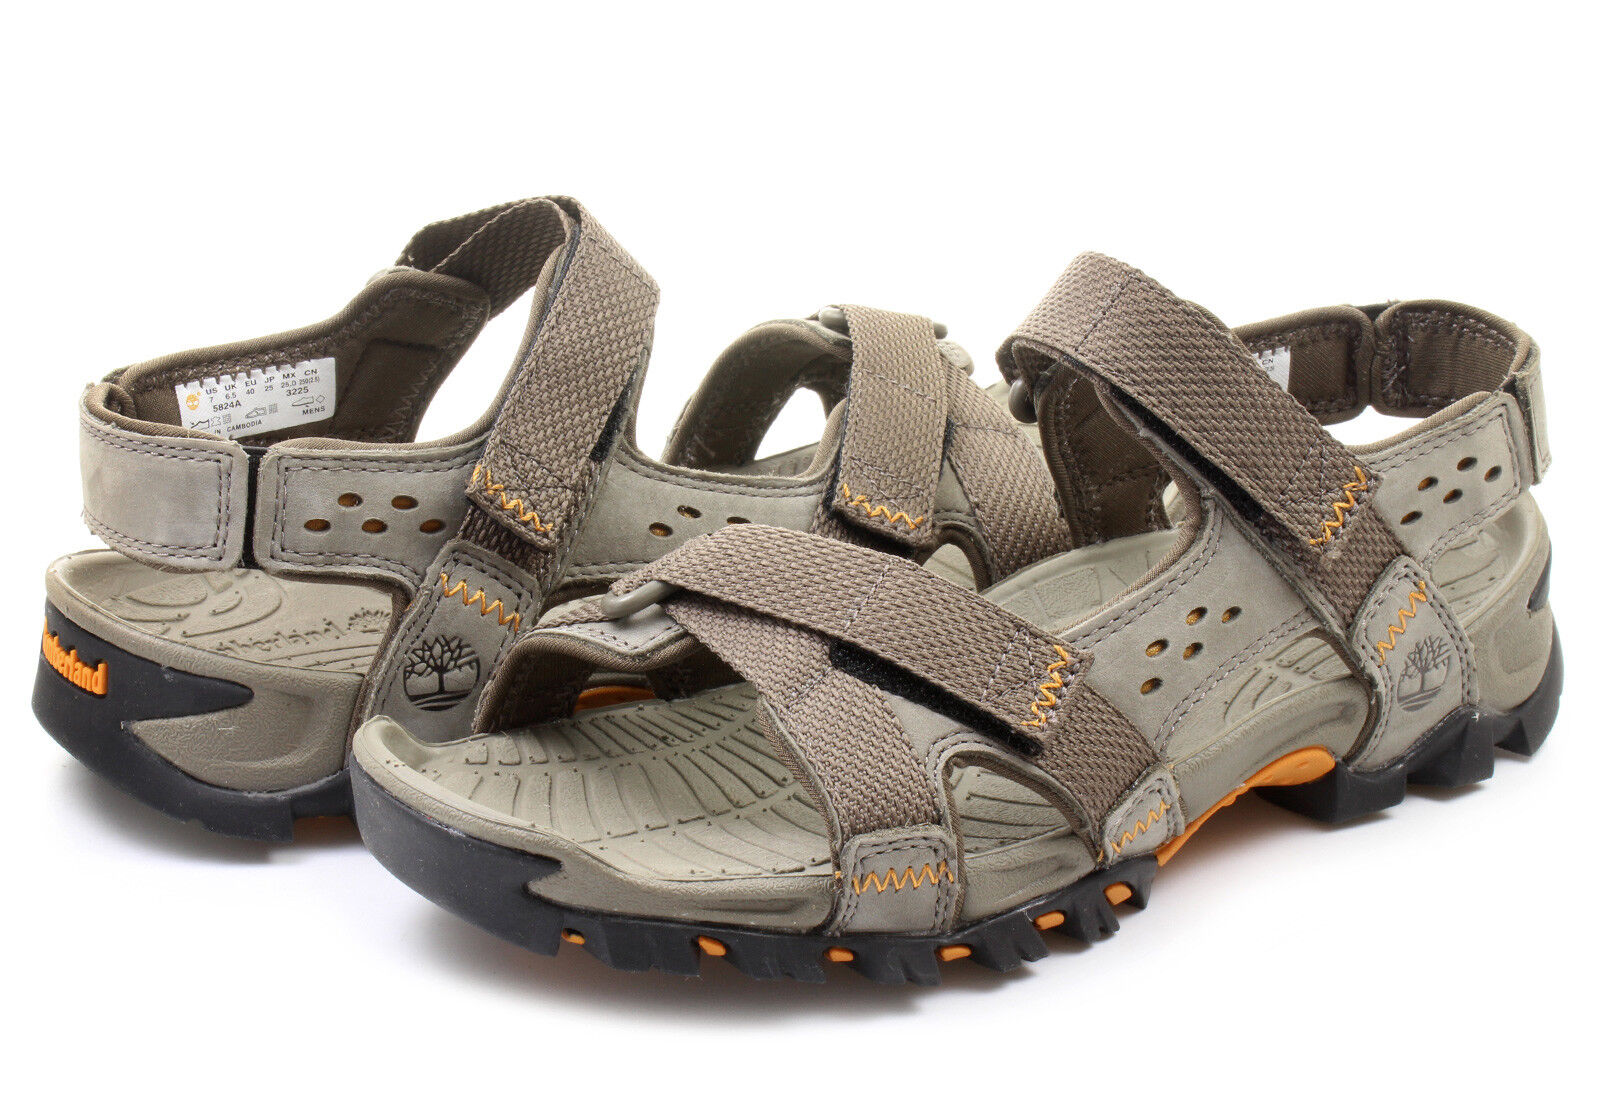 NEW! TIMBERLAND MEN'S  ELRIDGE LEATHER PEWTER SPORT SANDALS 5824A ALL SIZES USA